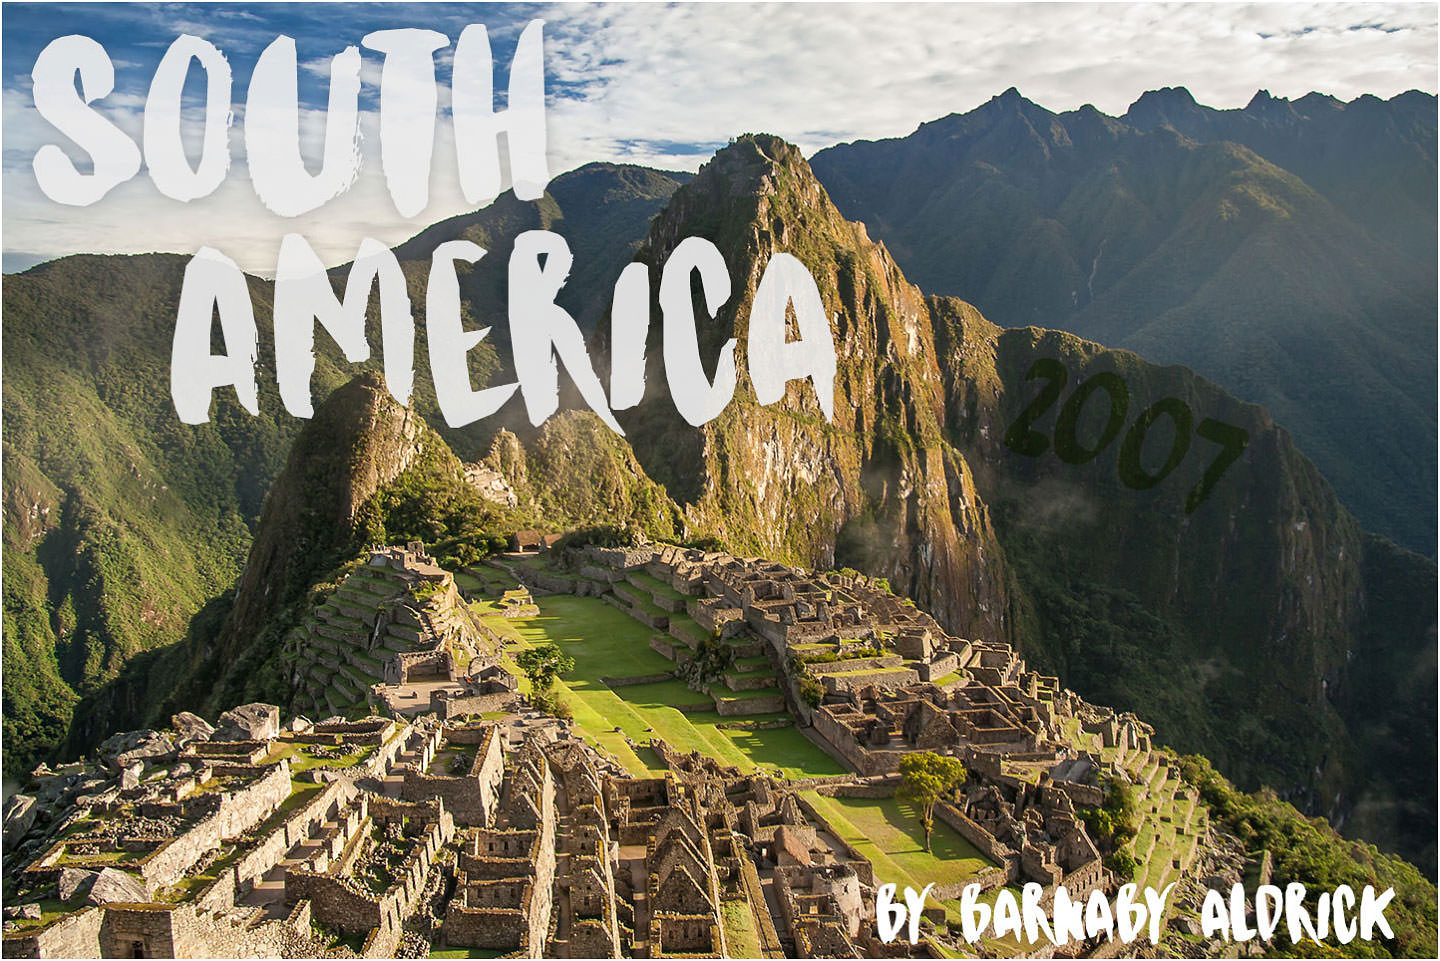 South America Travel Photos, Maccu Piccu Photos, Peru, Inca Trail